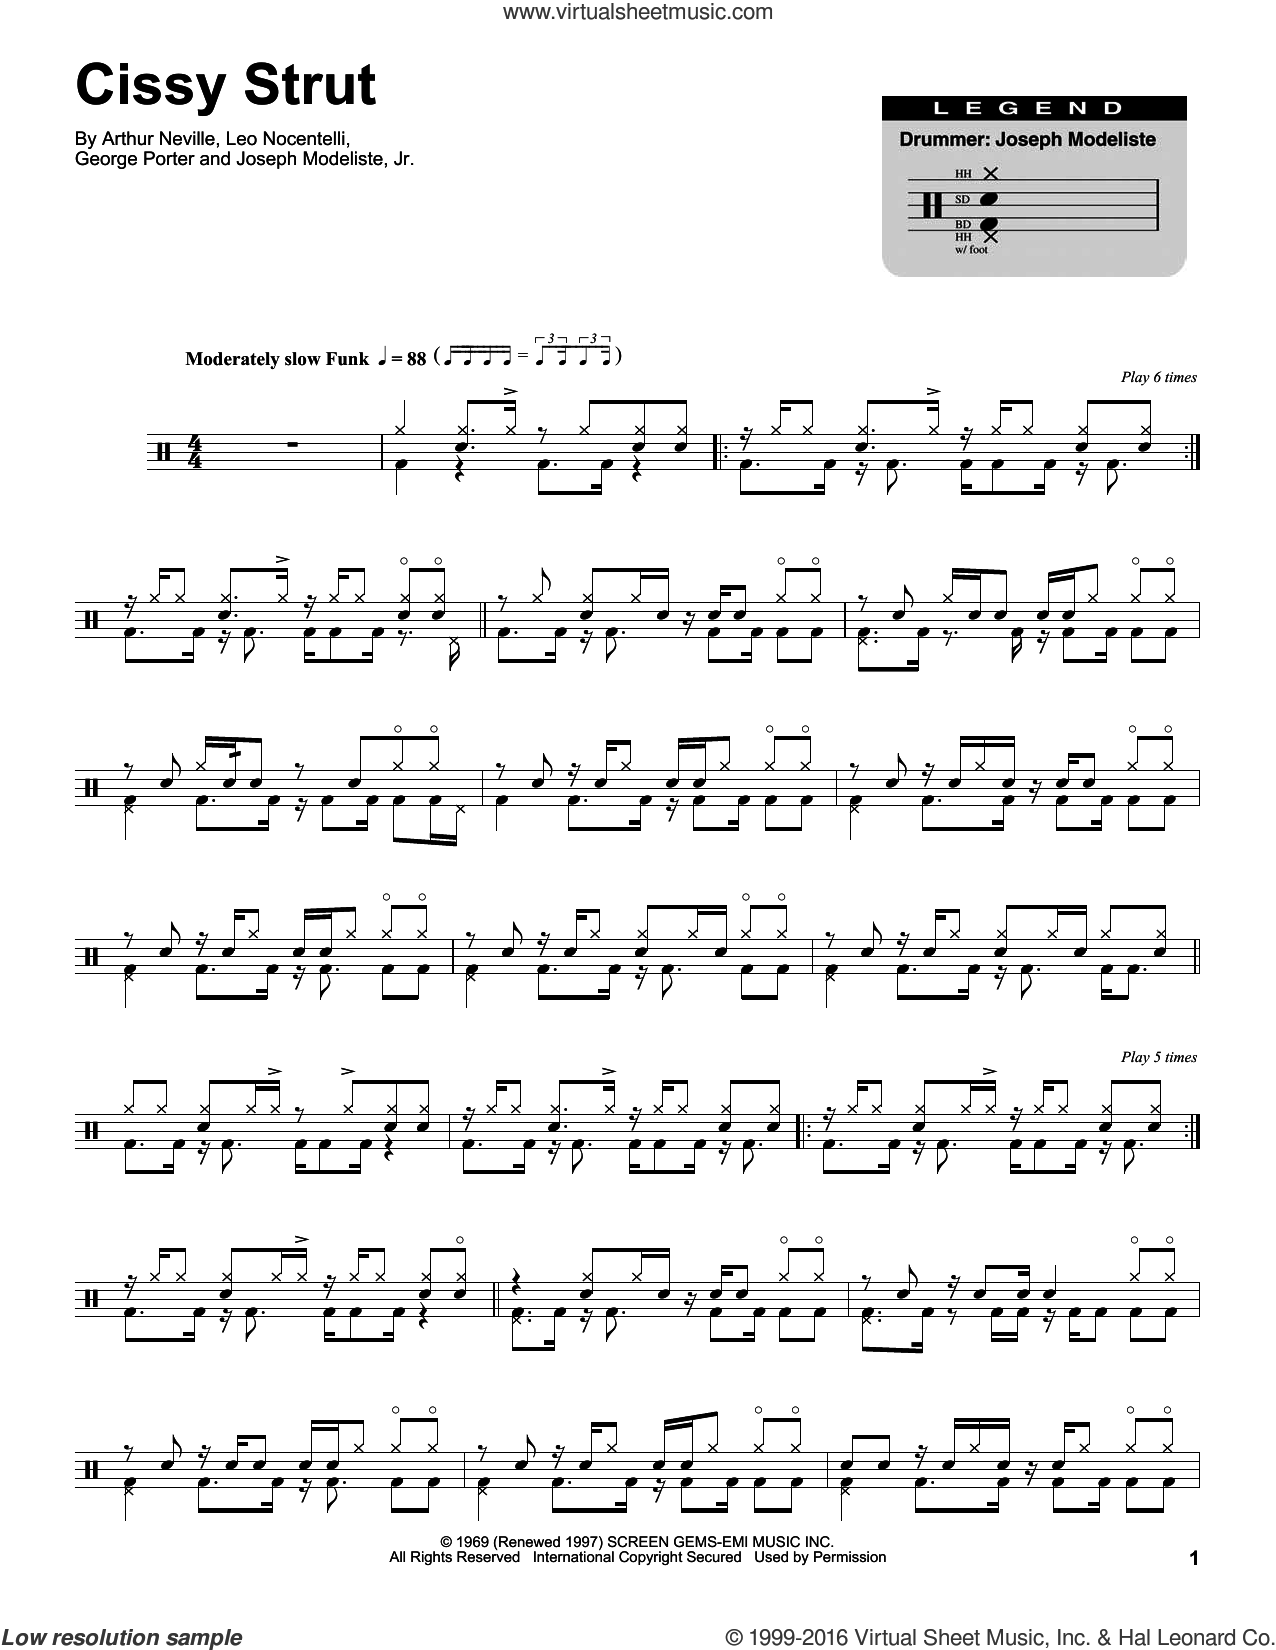 Cissy Strut sheet music for drums by The Meters, Arthur Neville and Leo Nocentelli, intermediate drums. Score Image Preview.